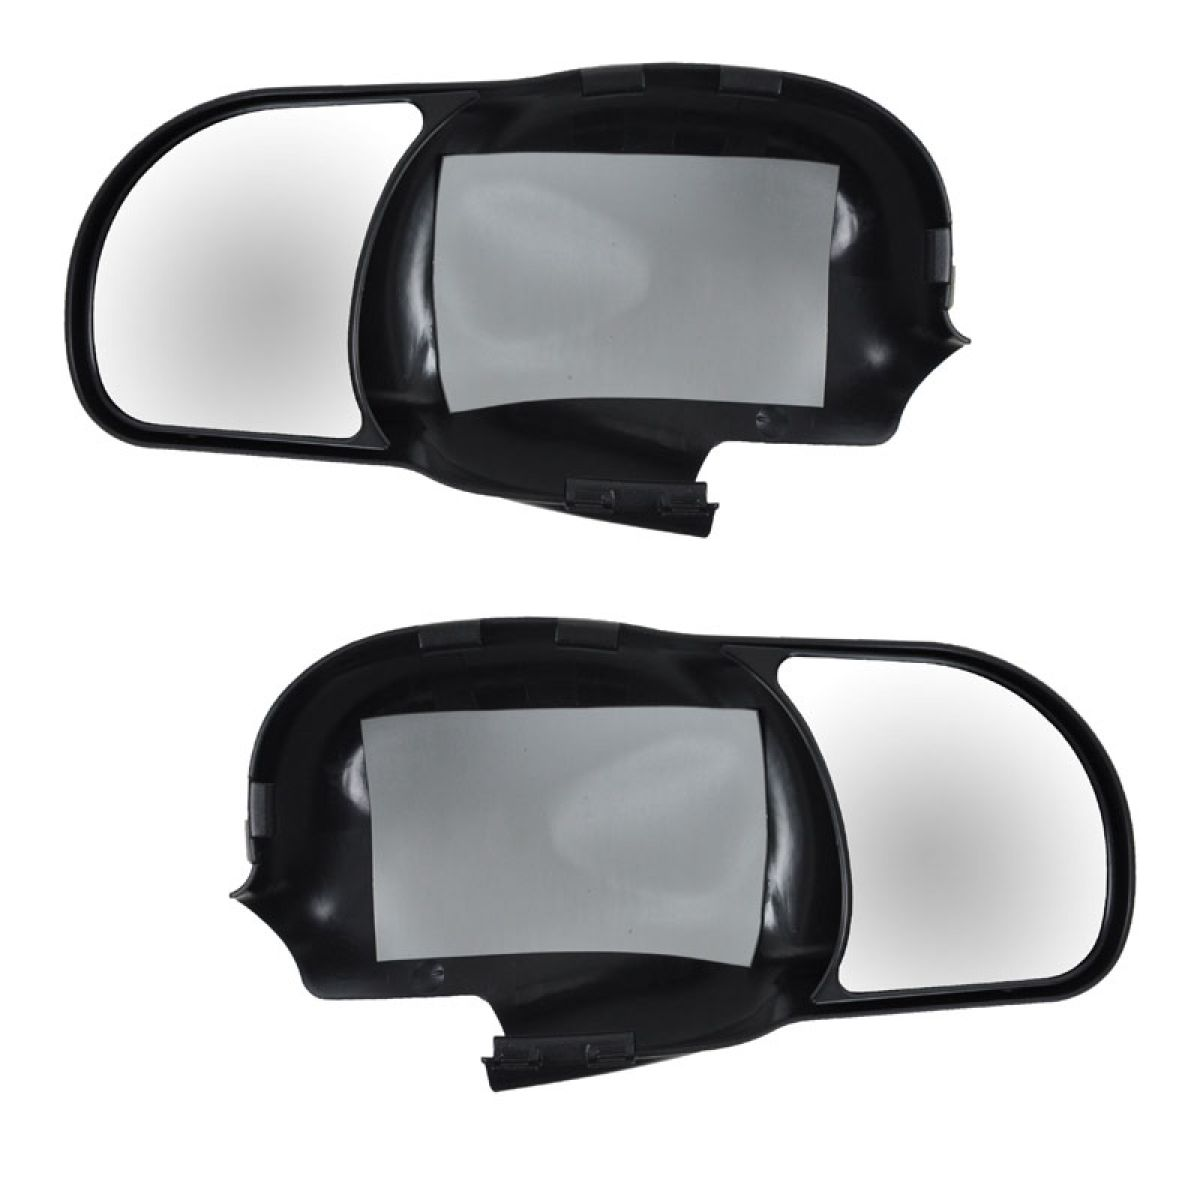 Clip On Mirror Extension Pair Set For Ford F150 F250 Light